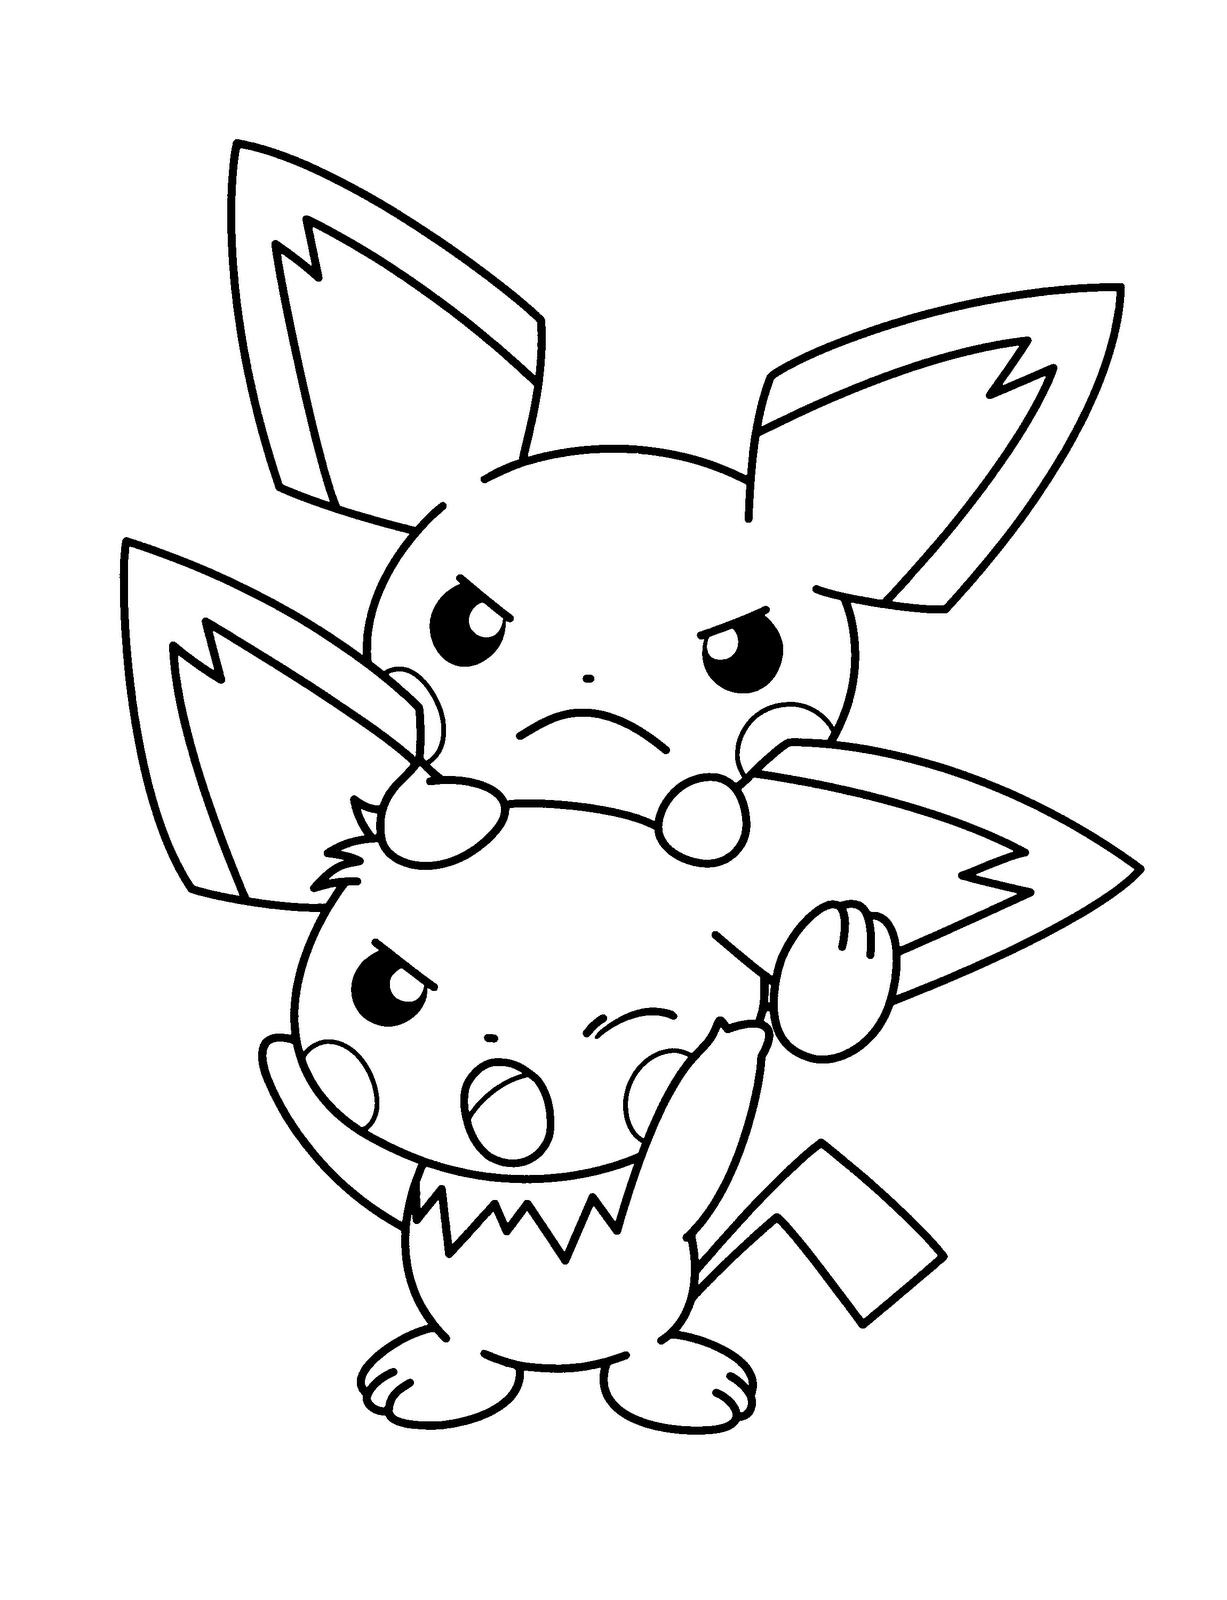 colering Pokemon Coloring Pages